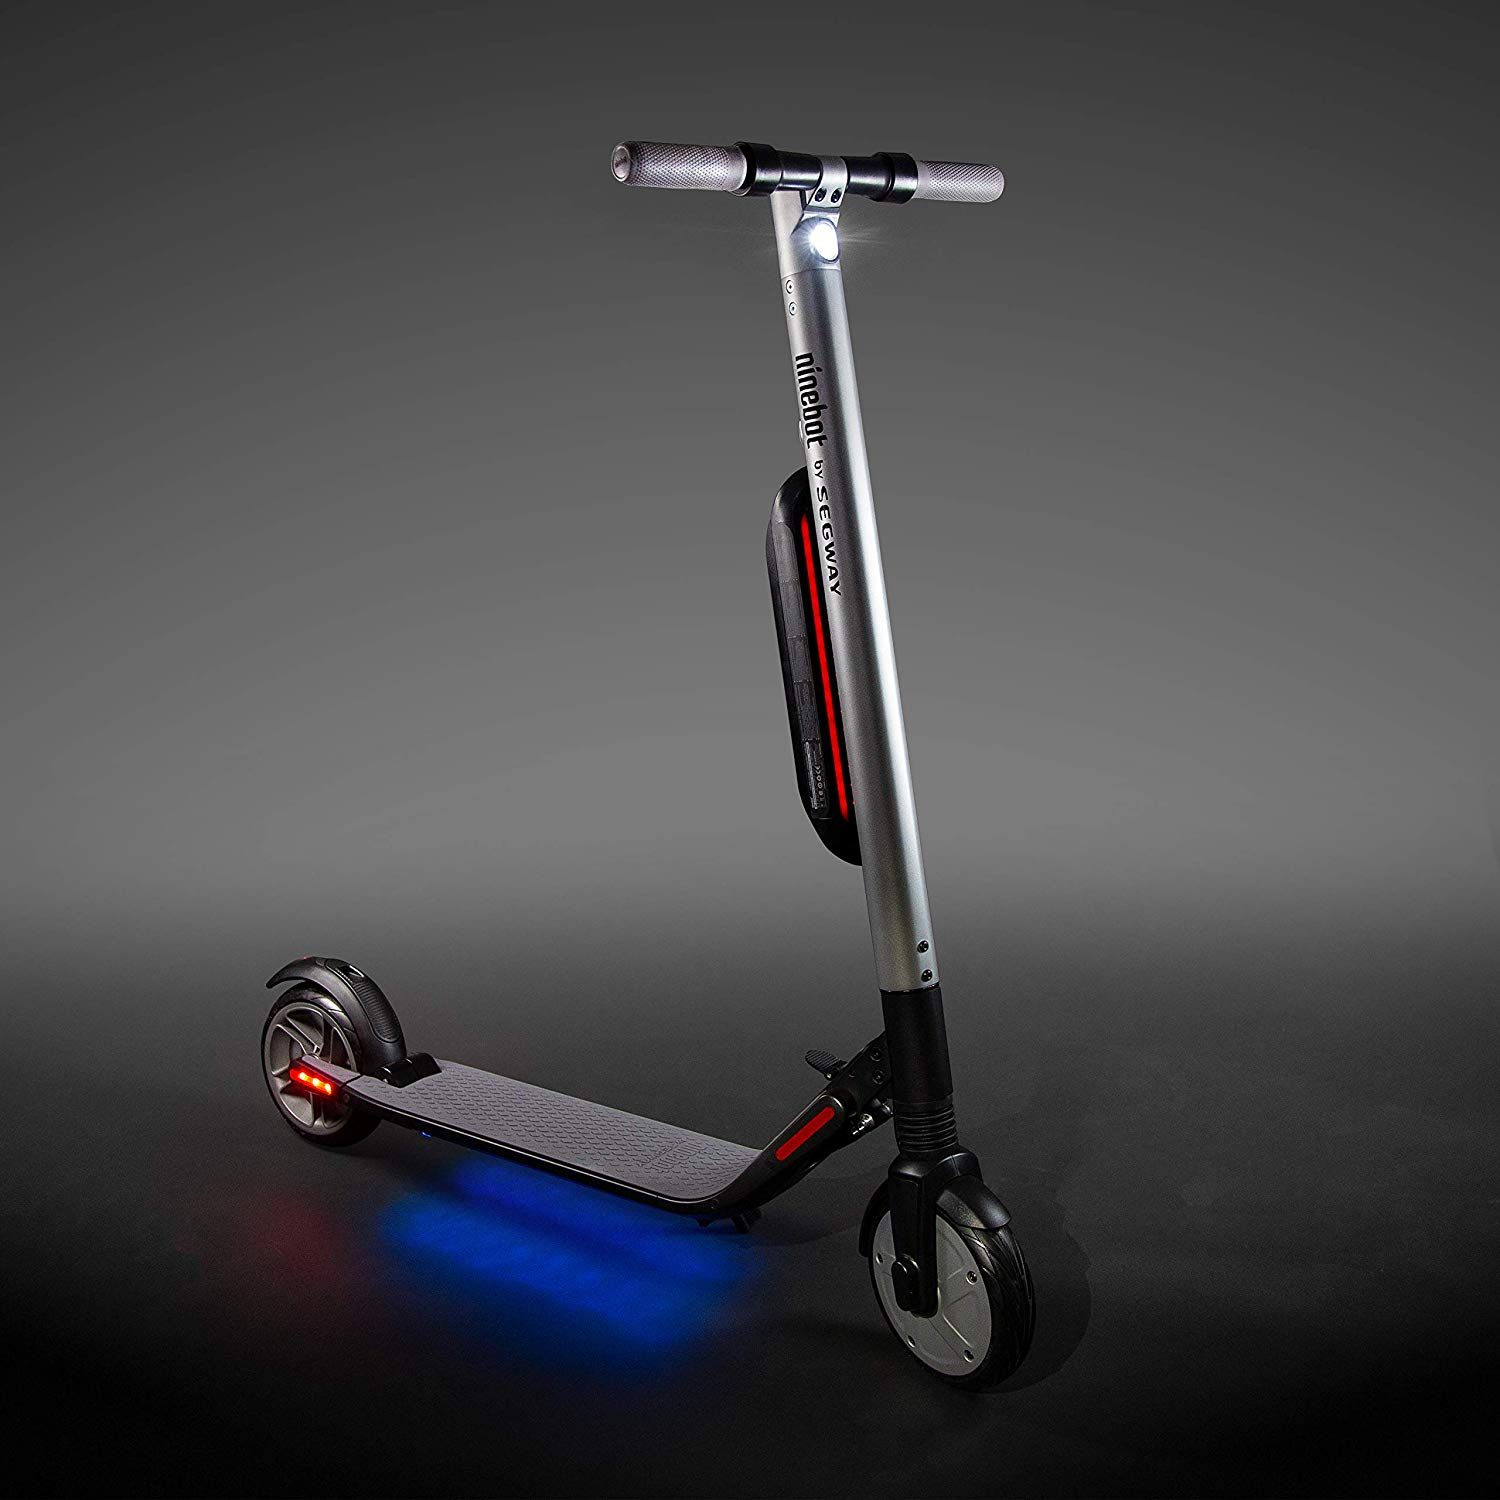 ES4 - Weight- 31 lbs (14 kg)  Max Speed- 19 mph (30 km/h)Range*- 28 miles (45 km) Cruise Control - Set your speed and let the Segway® PT do the work for youWeather Resistant - IP54 Weather Resistant to make transitioning from indoors to outdoors seamlessBluetooth Control - Control the Scooter via Smartphone or Tablet*Actual range depends on riding style and terrain